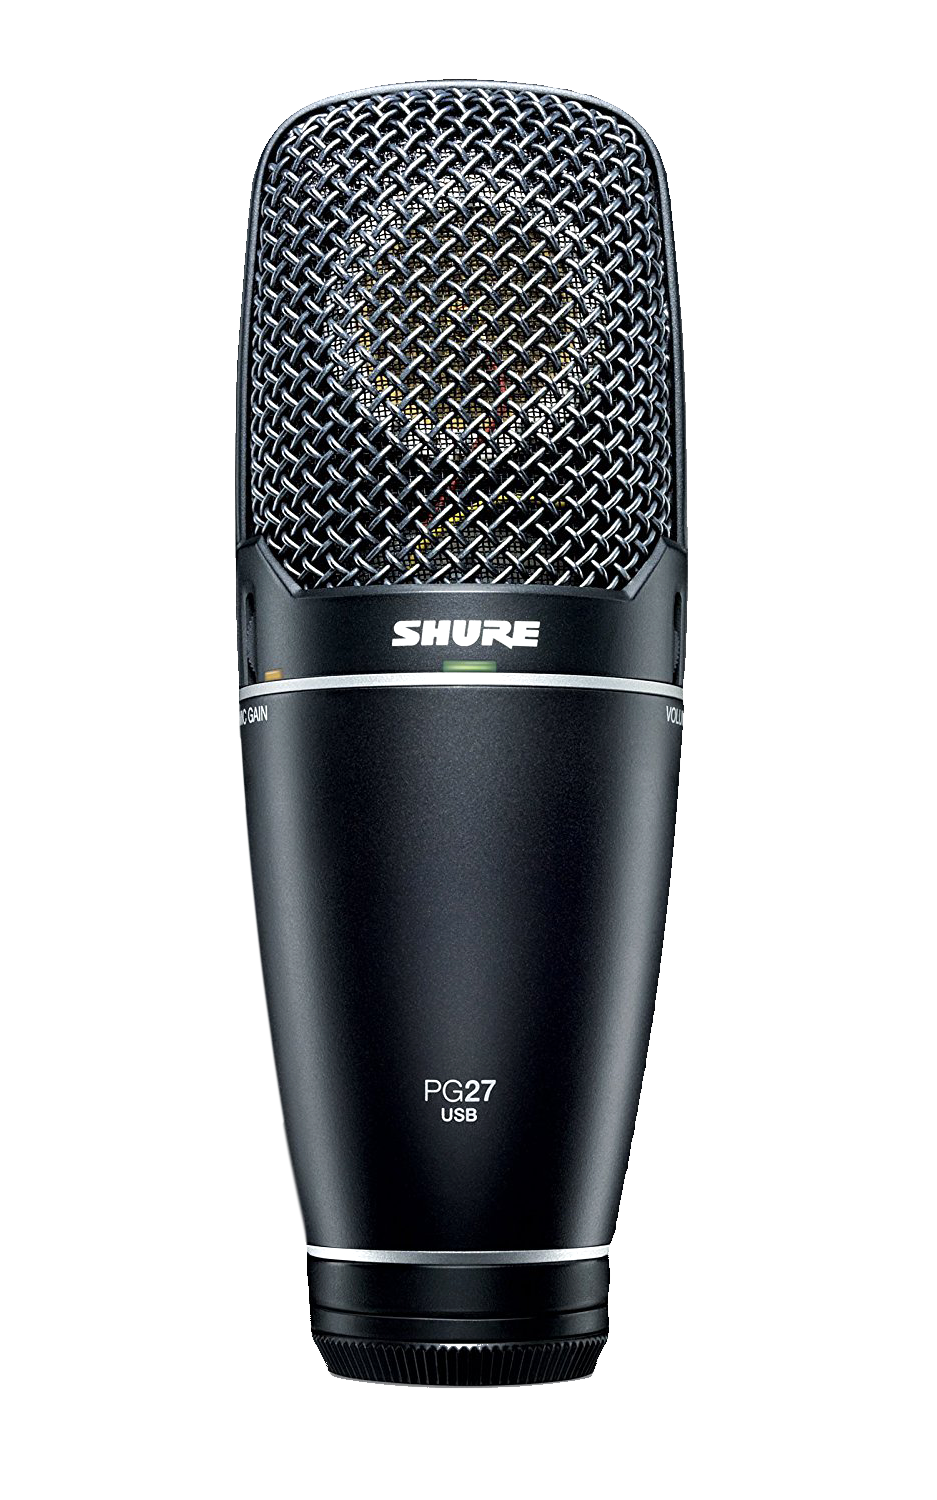 Shure PG27 USB Multi-Purpose